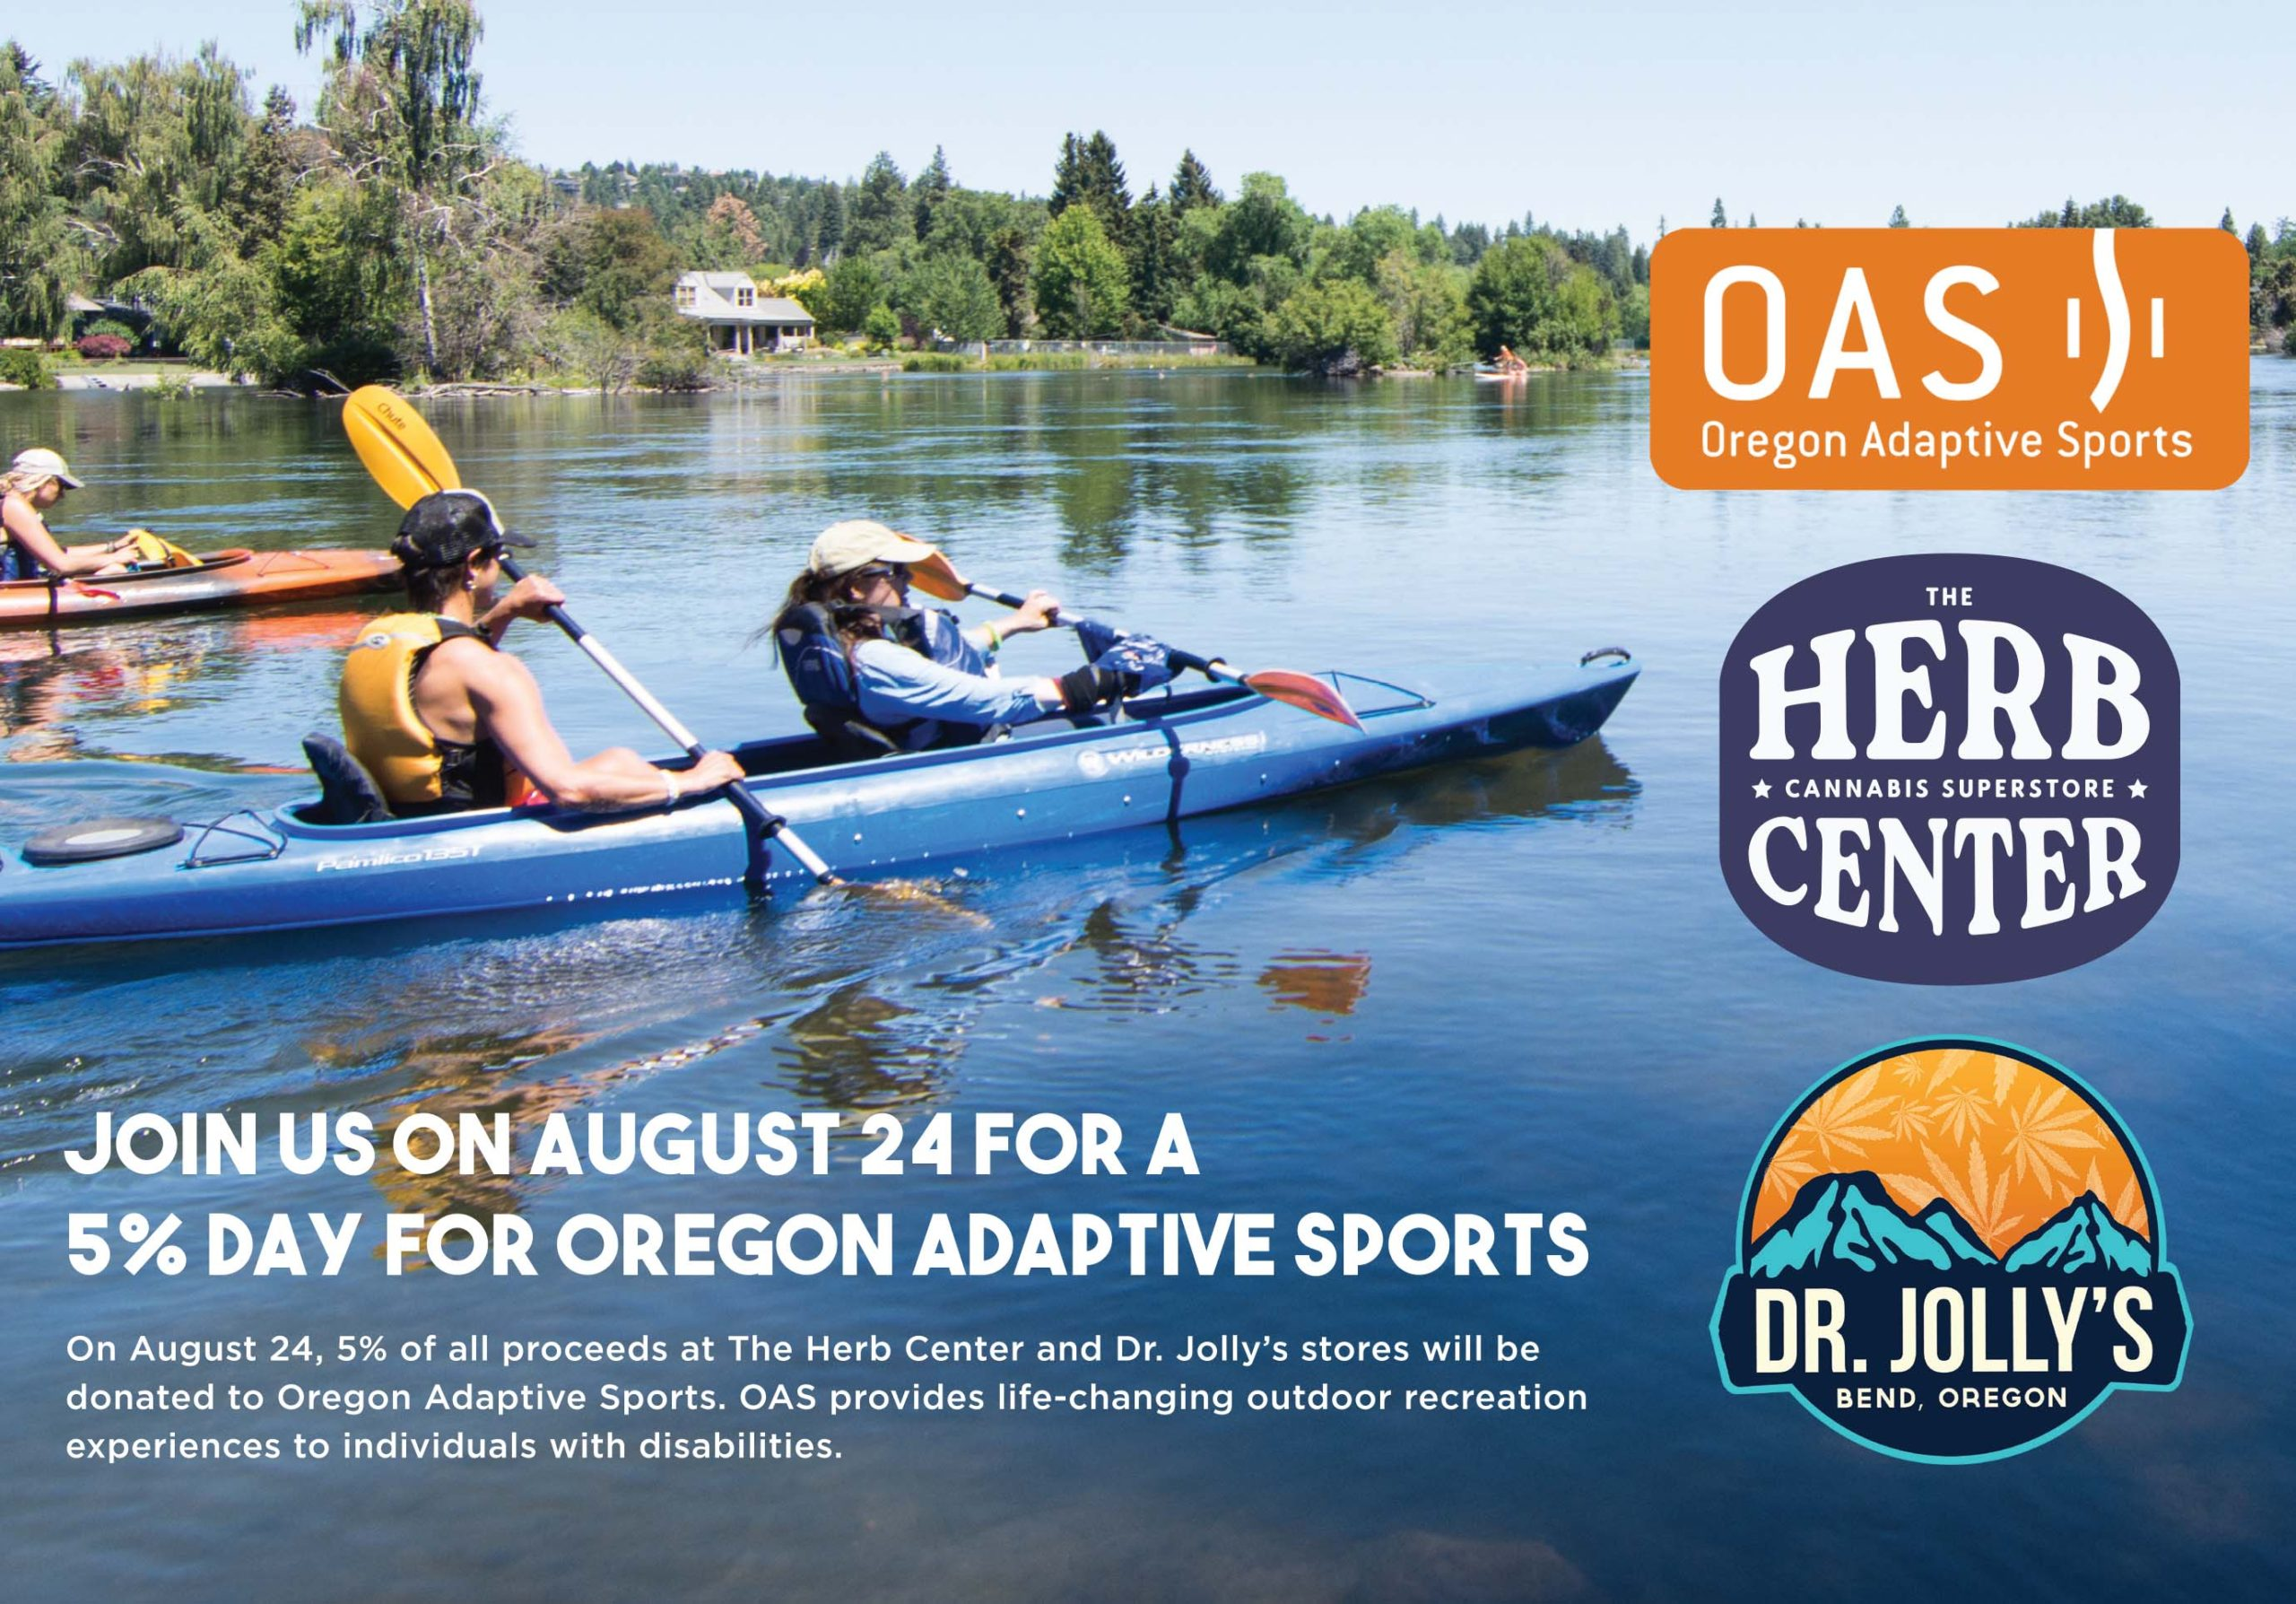 OAS athlete kayaking with business logos super imposed on top